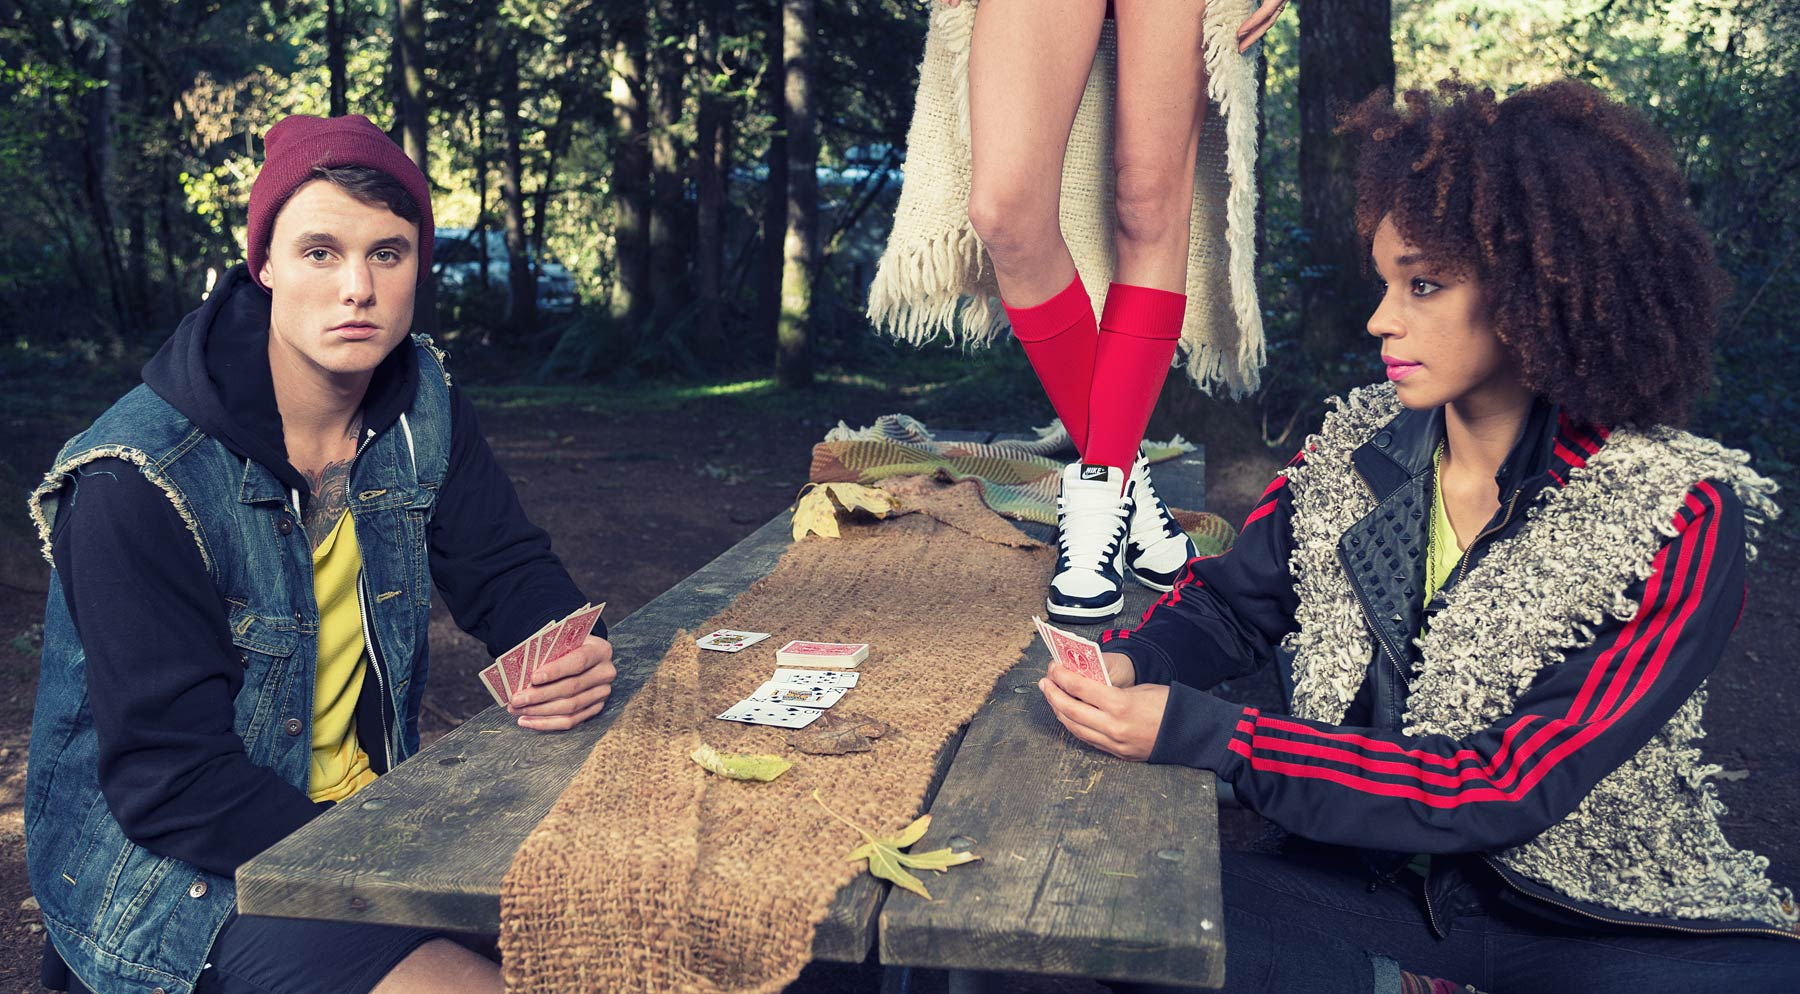 Fashion portrait of a couple playing cards at a camp ground with a woman standing behind them